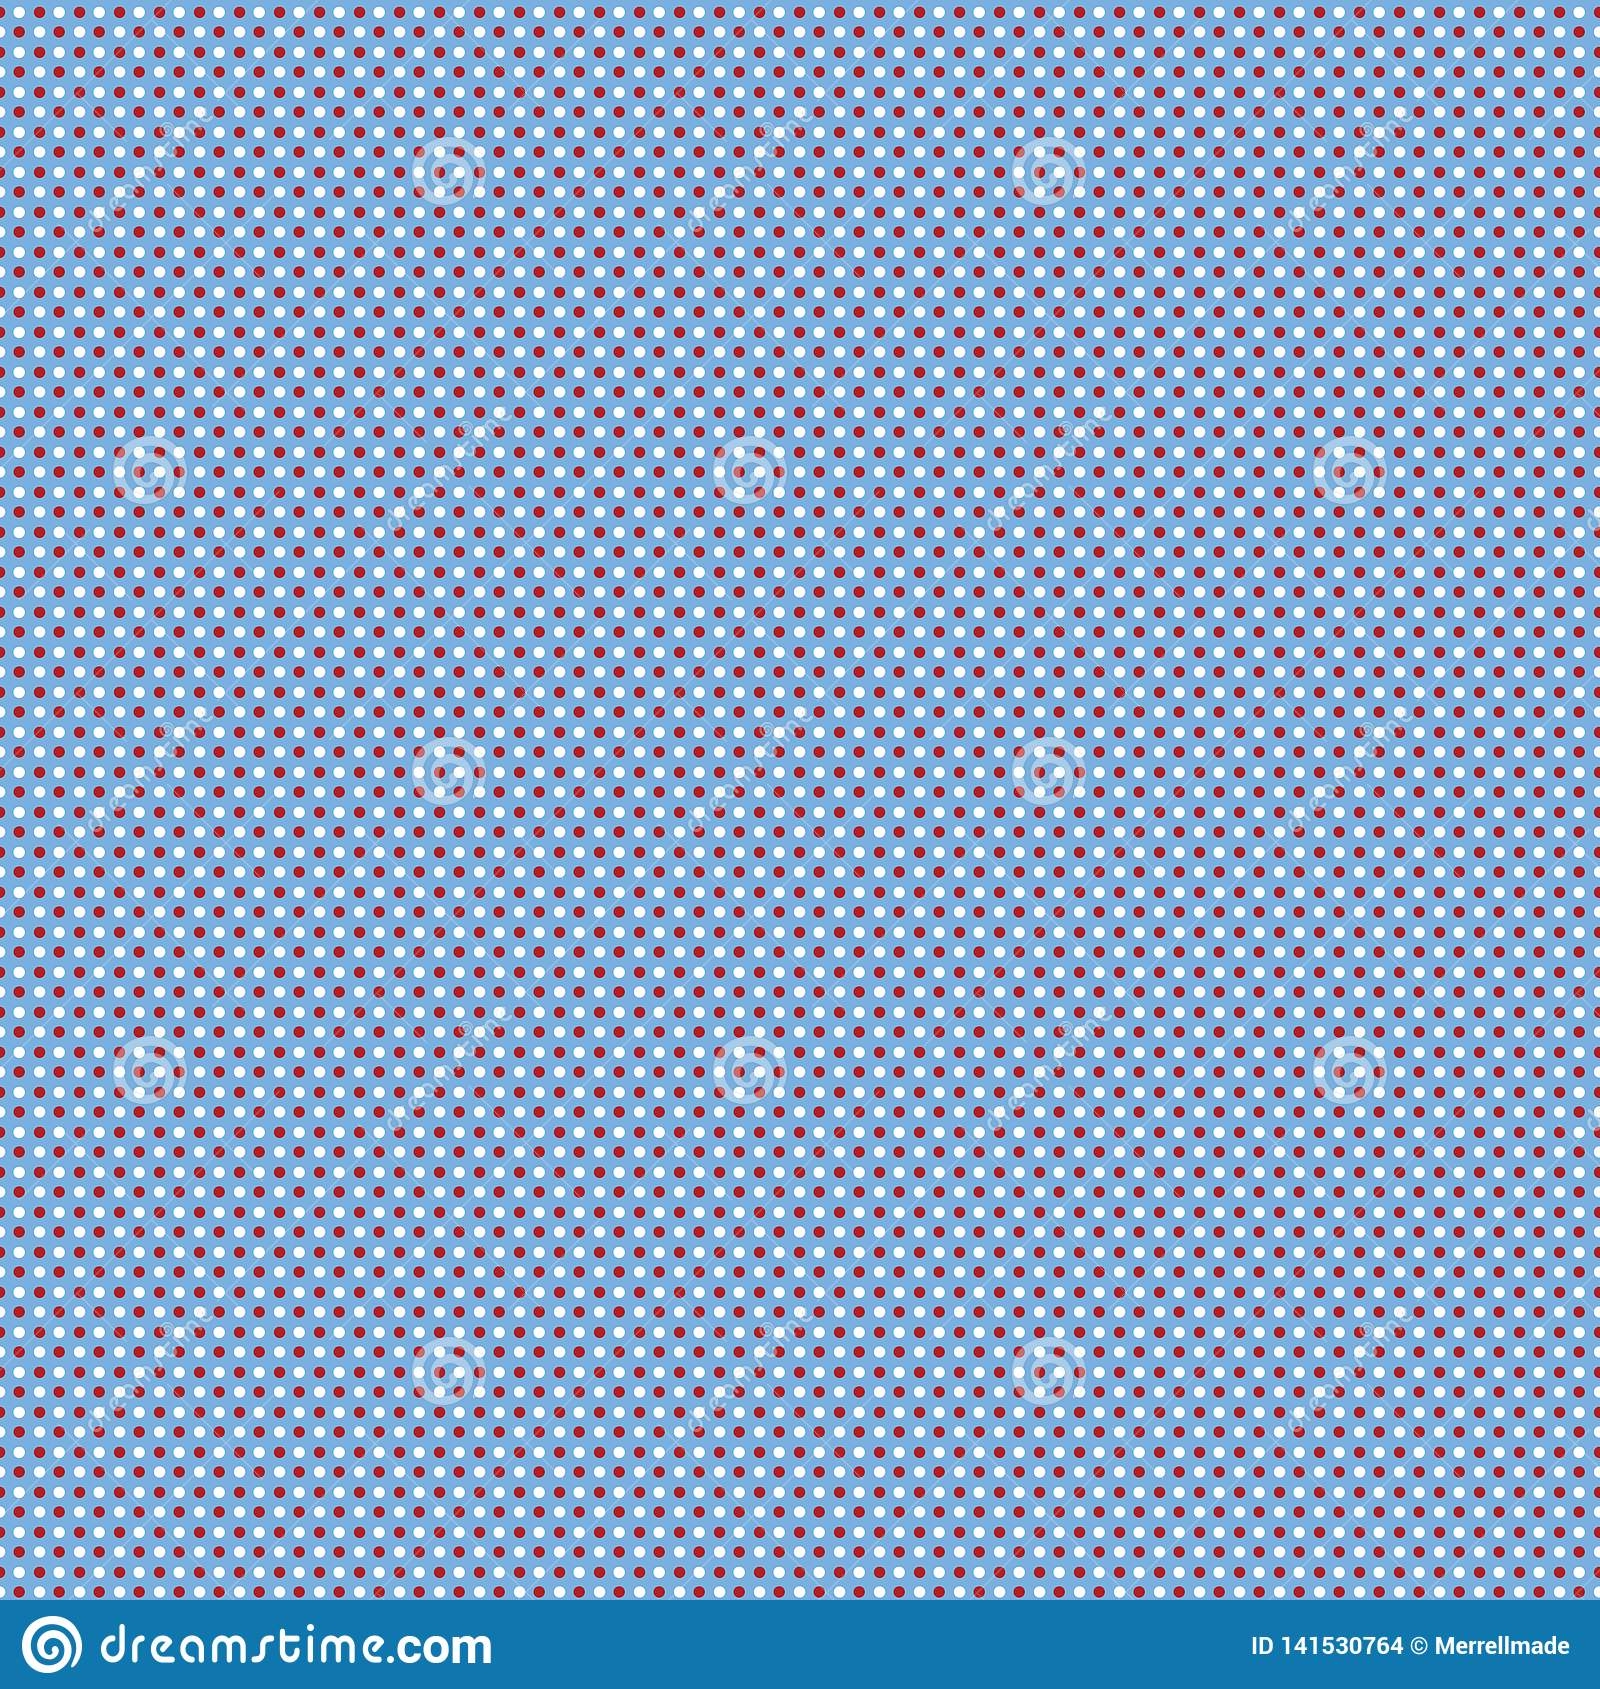 Polkadot Repeating Pattern - Blue, Red, White